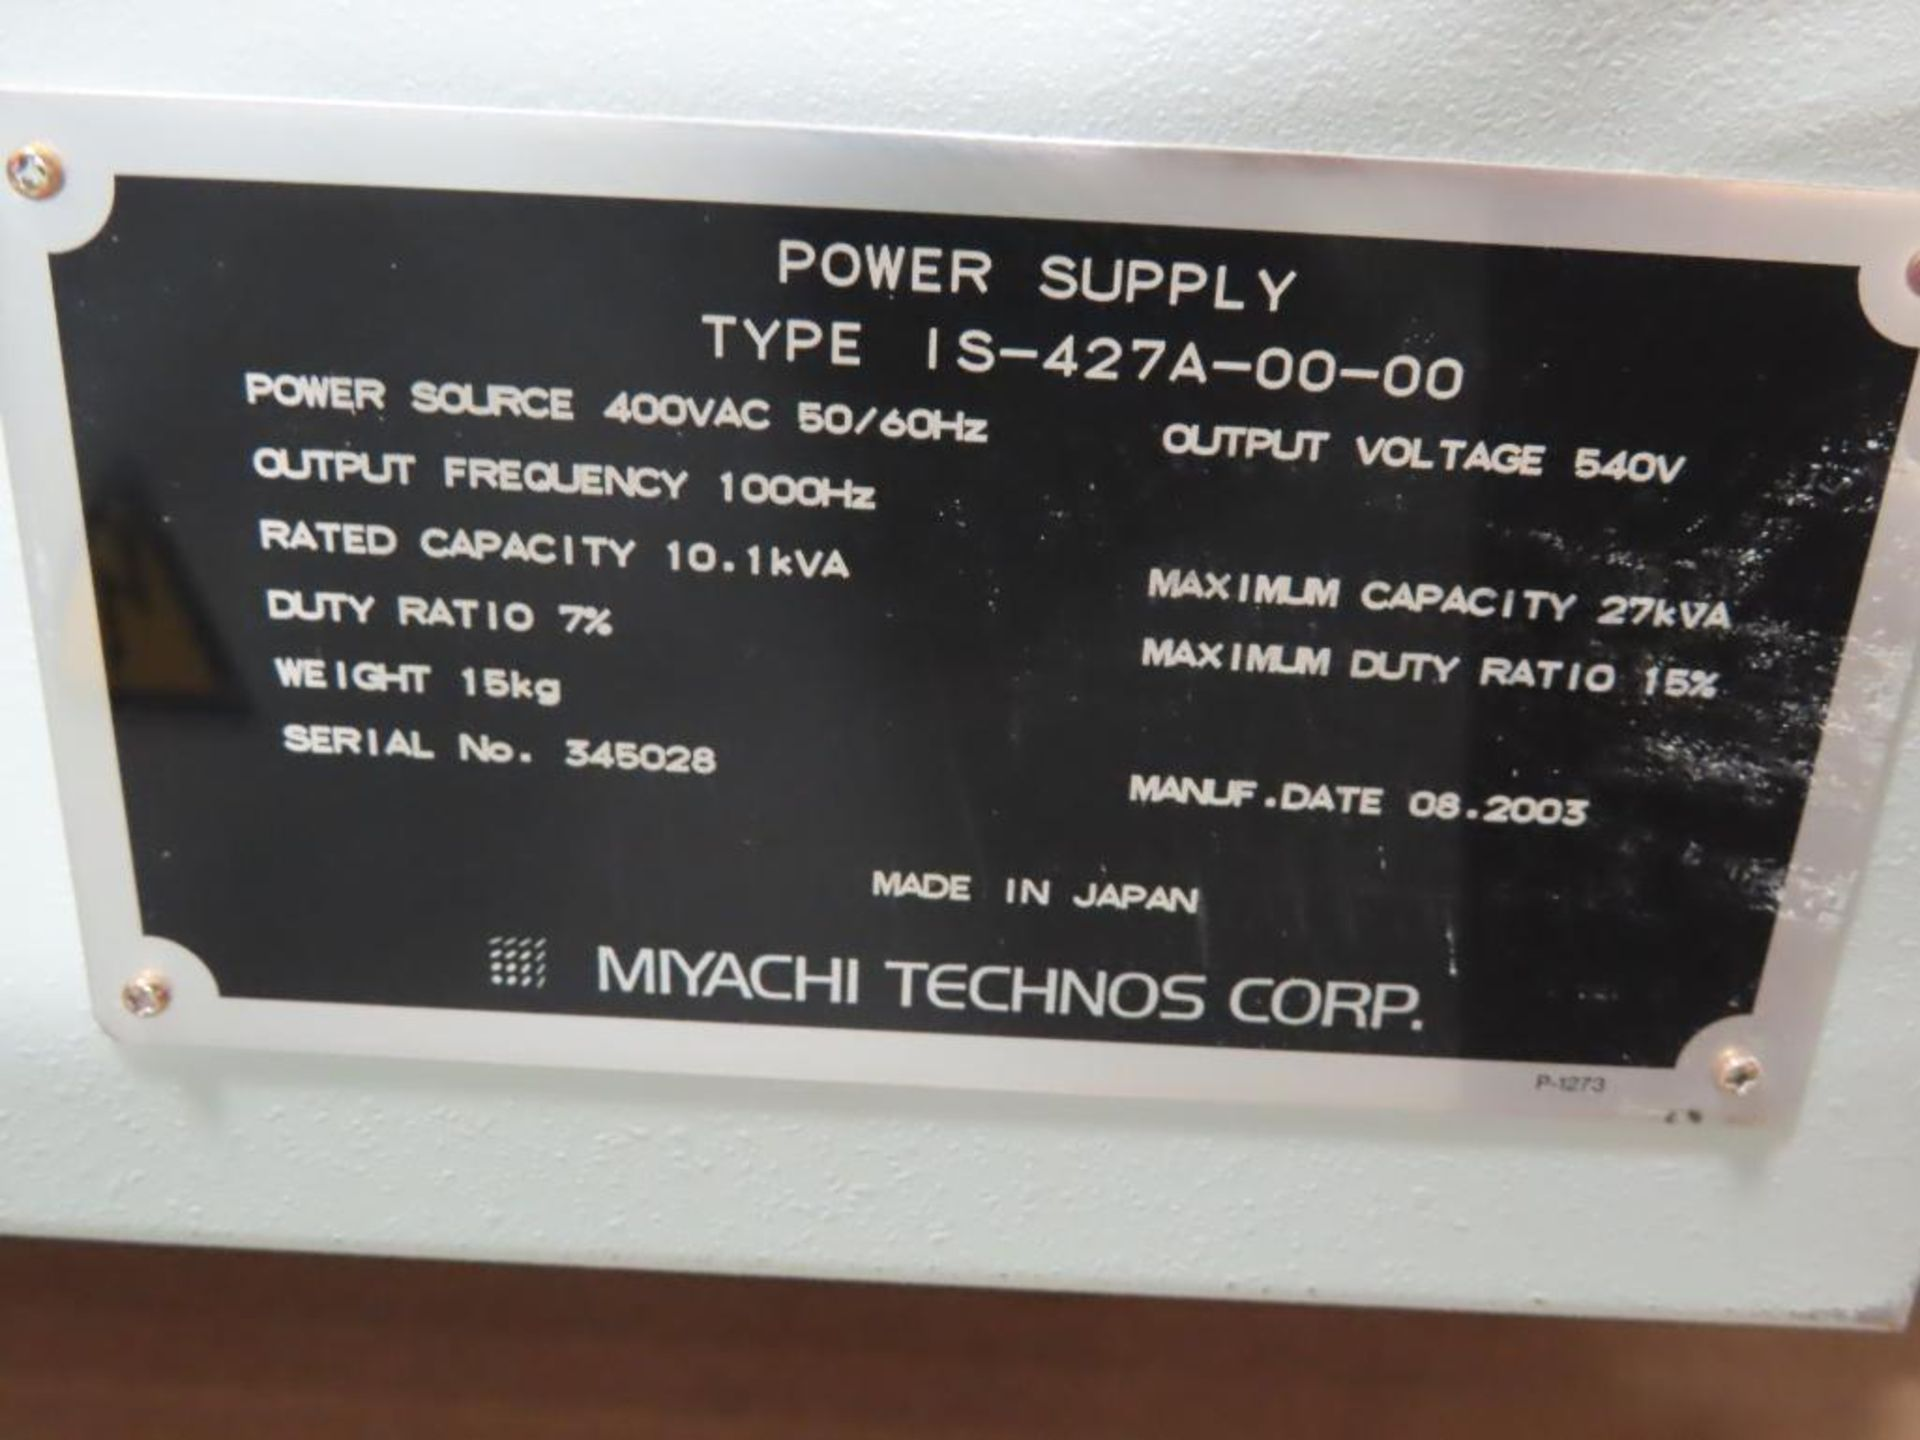 Lot 2 - Miyachi Technos welding power supply type IS-427A-00-00, 27.1kVA max, 540v output.